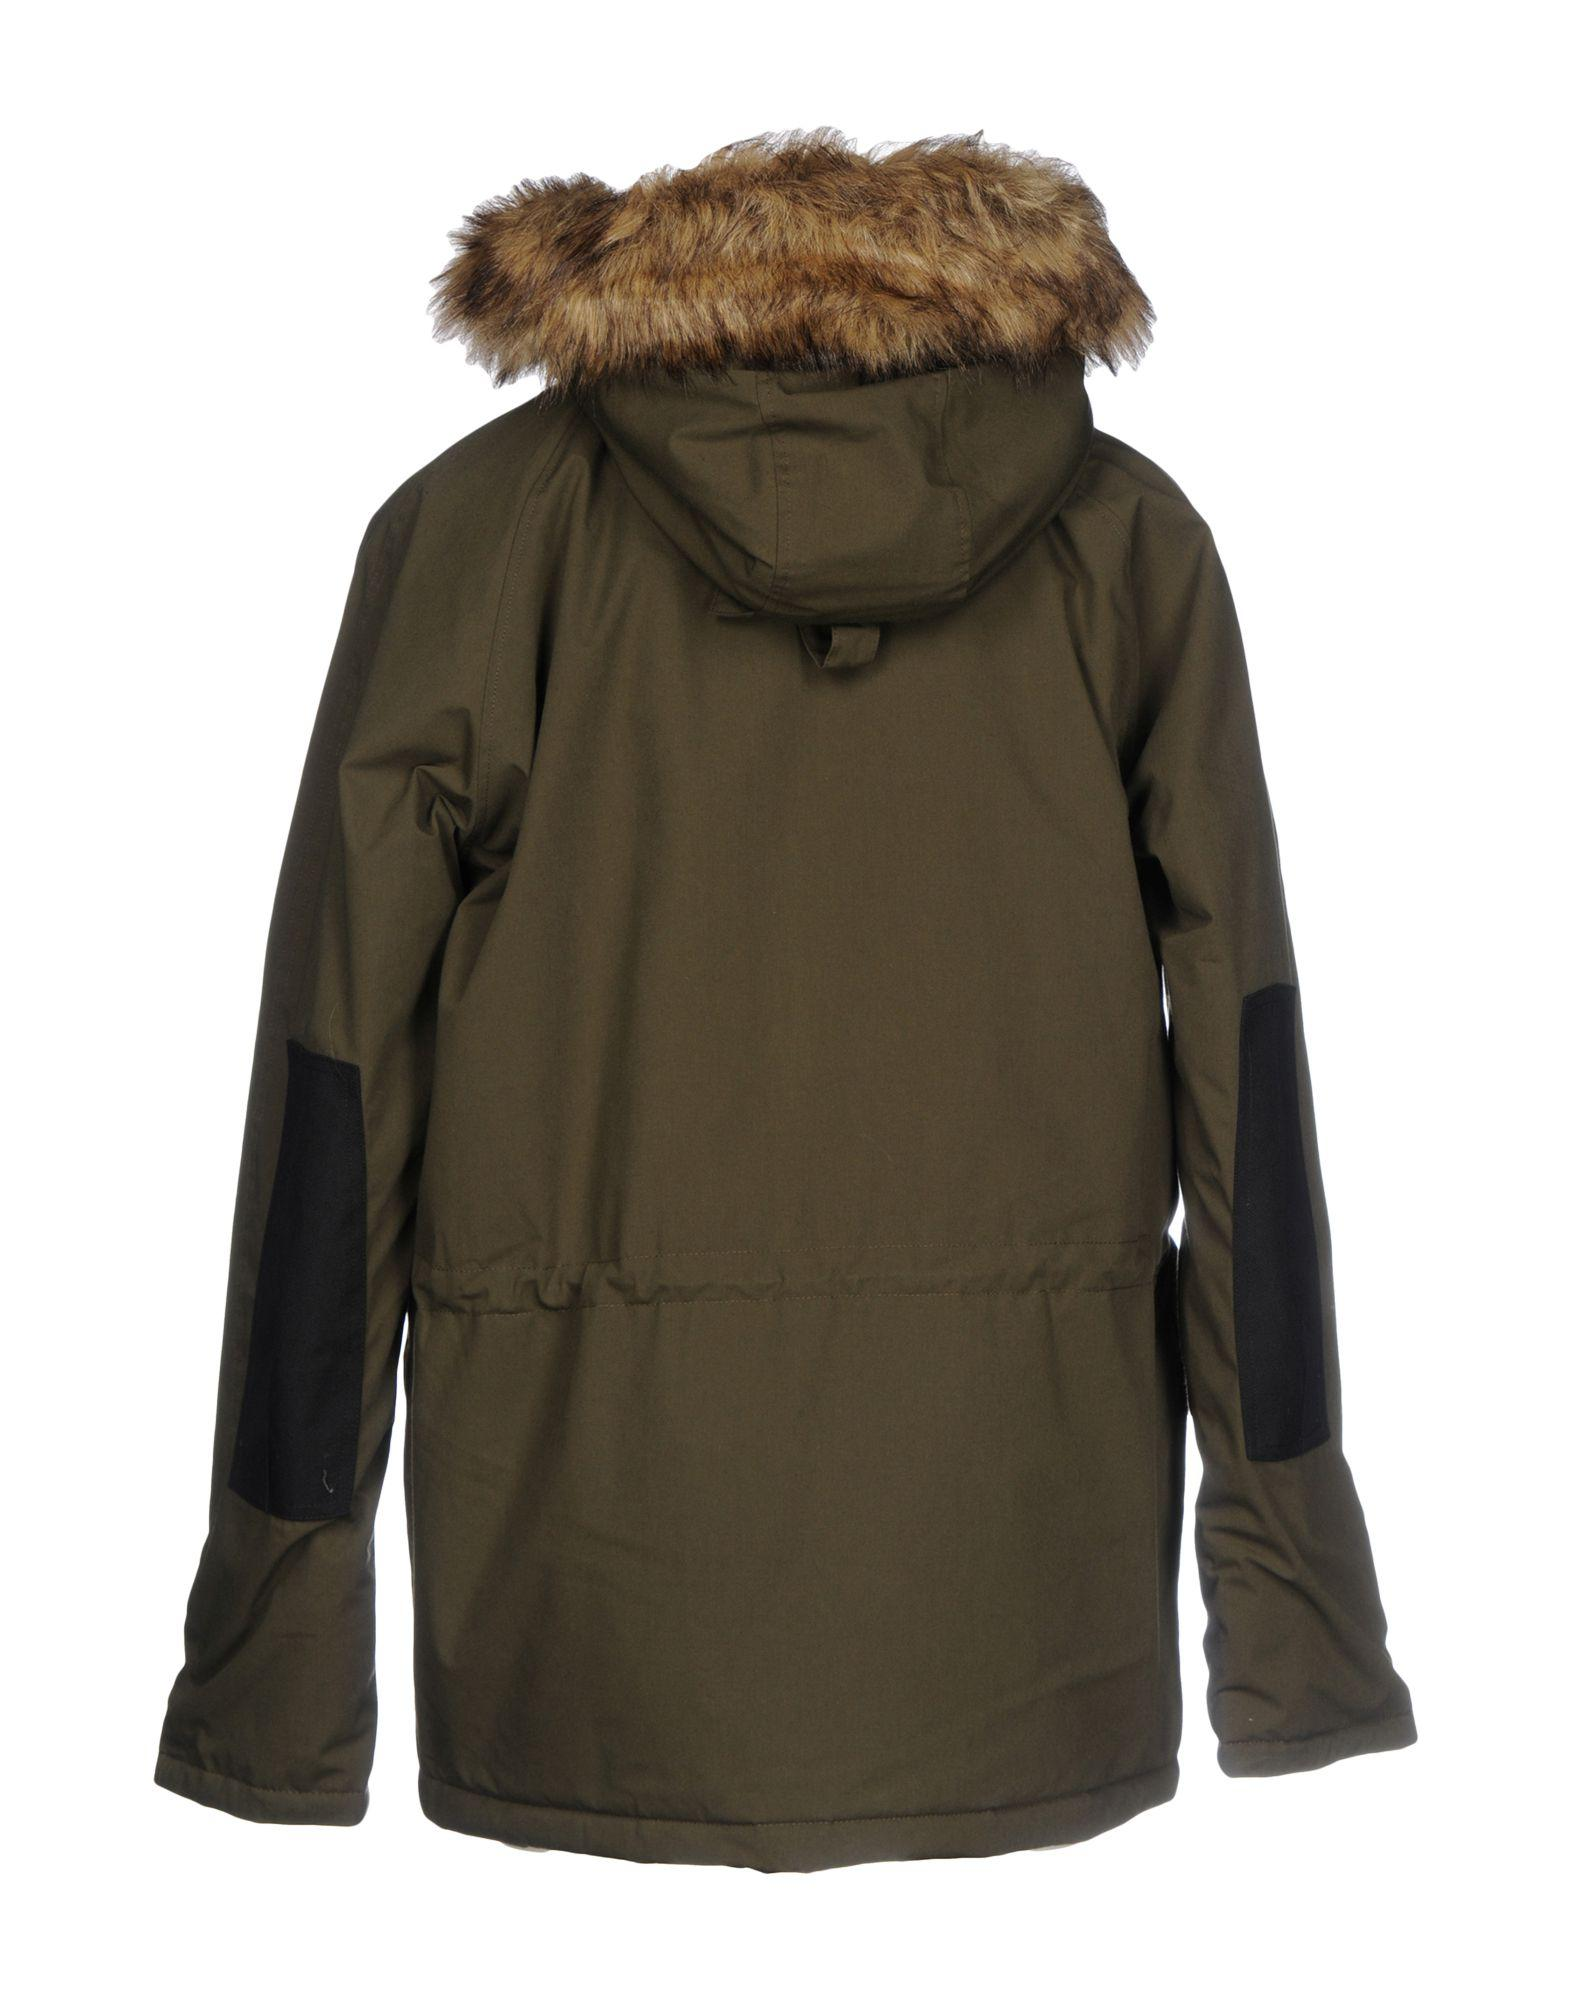 Carhartt Jacket in Military Green (Green) for Men